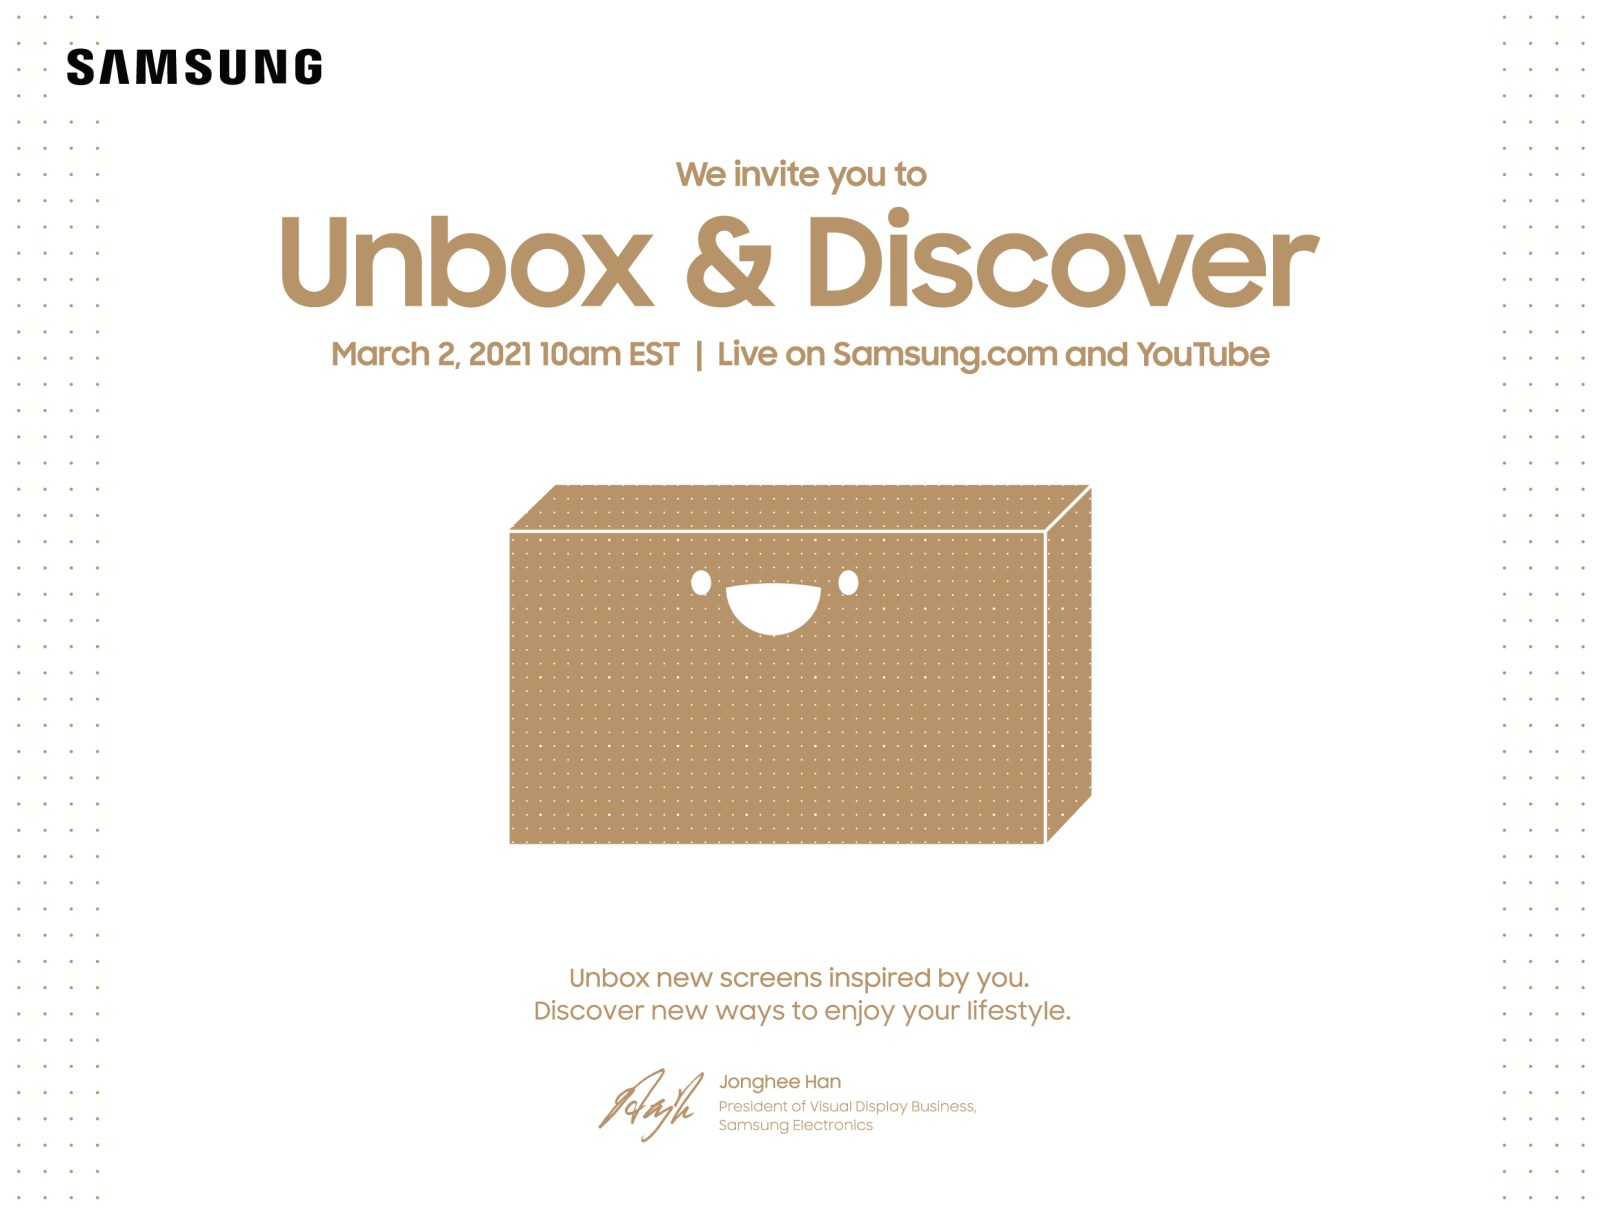 Samsung Unbox & Discover event